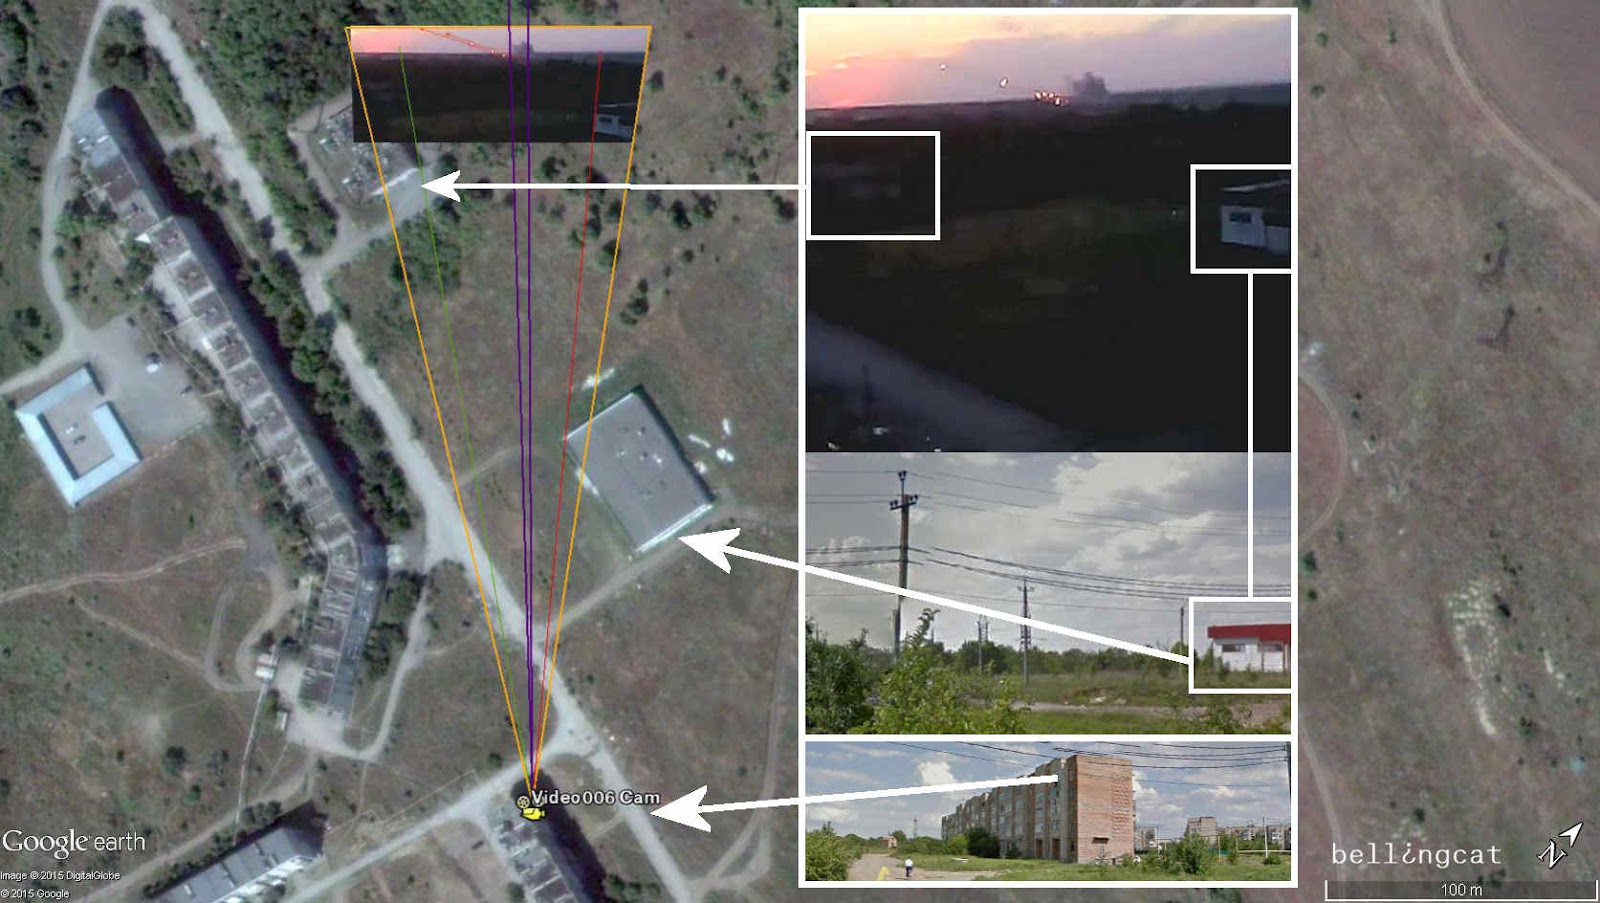 Camera location of Video006 –dark purple lines show the direction of the firing position